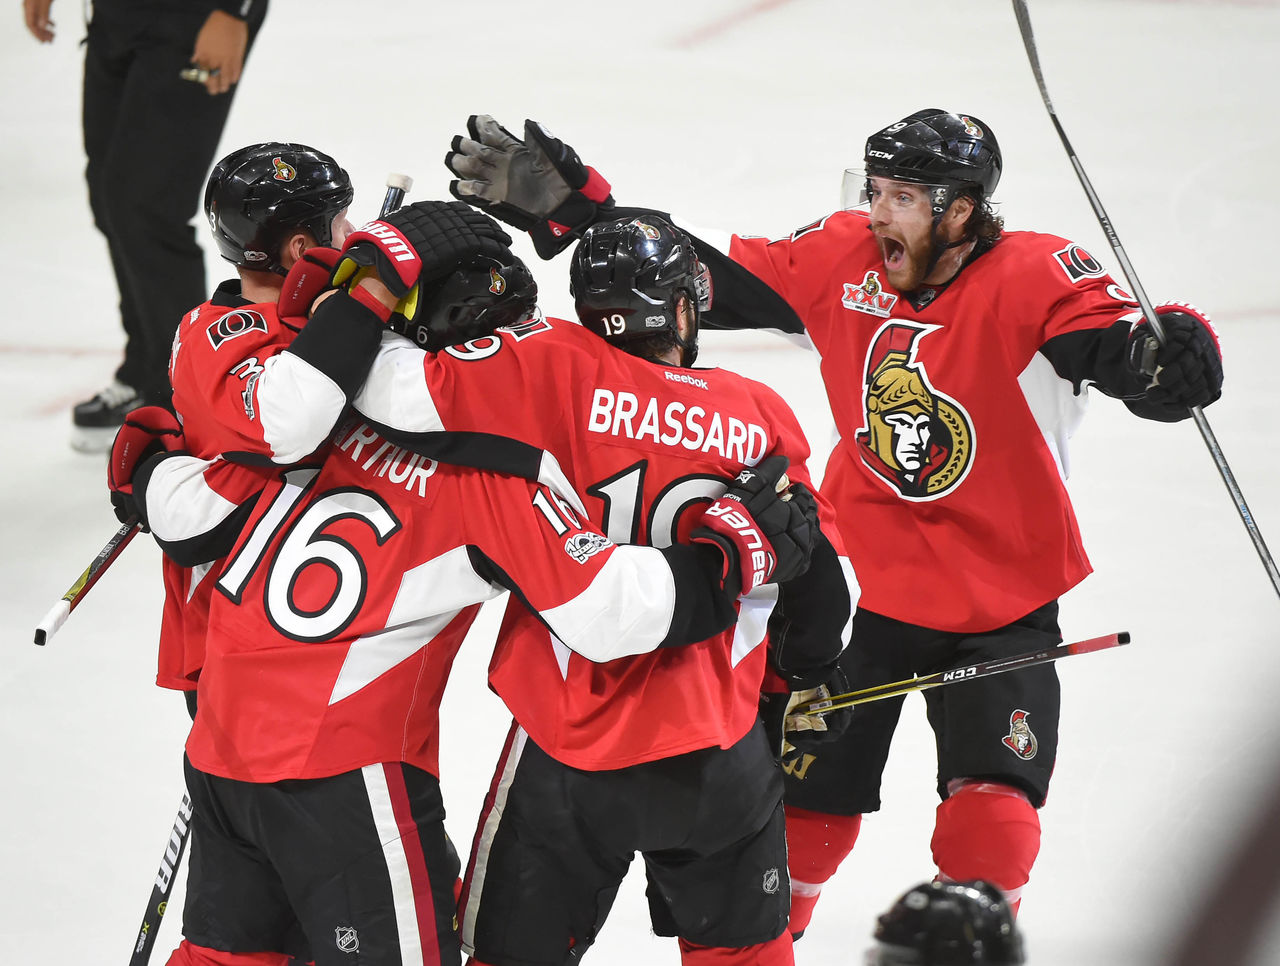 Cropped 2017 05 18t010701z 1453732352 nocid rtrmadp 3 nhl stanley cup playoffs pittsburgh penguins at ottawa senators